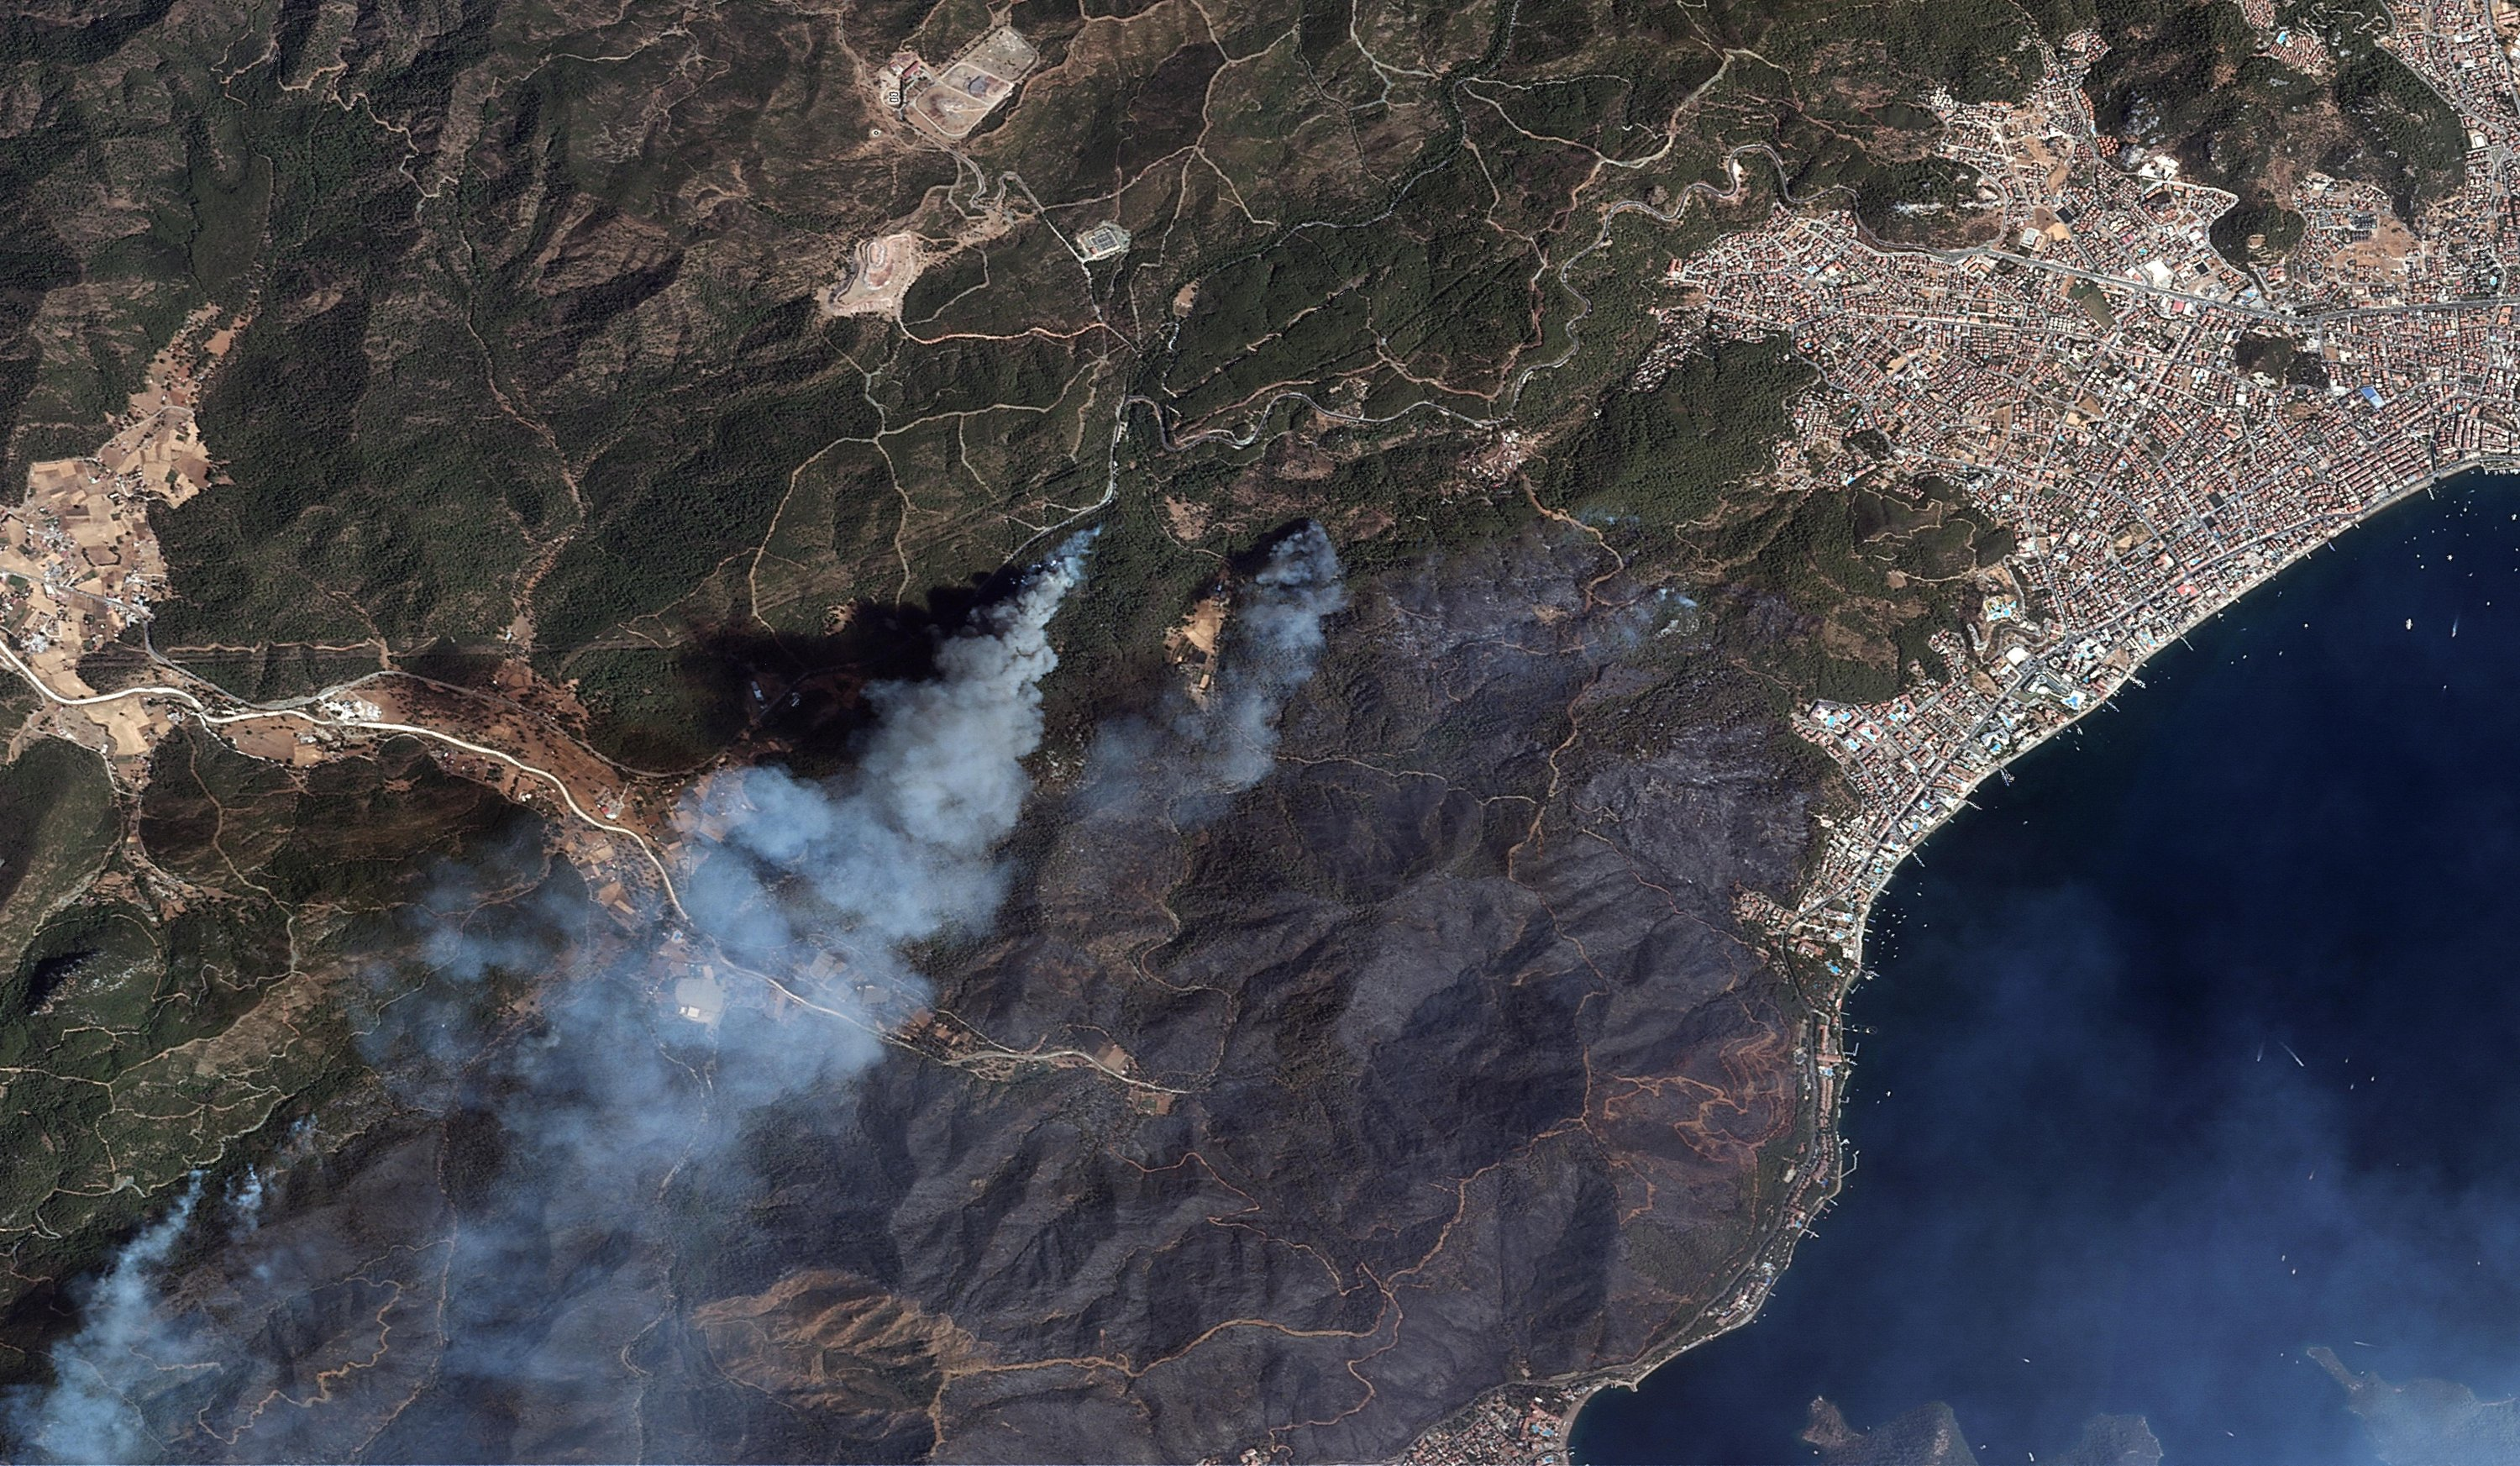 Satellite images shared by the Ministry of National Defense show the forest fire affecting Marmaris, in Muğla, Turkey, Aug. 1, 2021. (COURTESY OF MINISTRY OF NATIONAL DEFENSE)